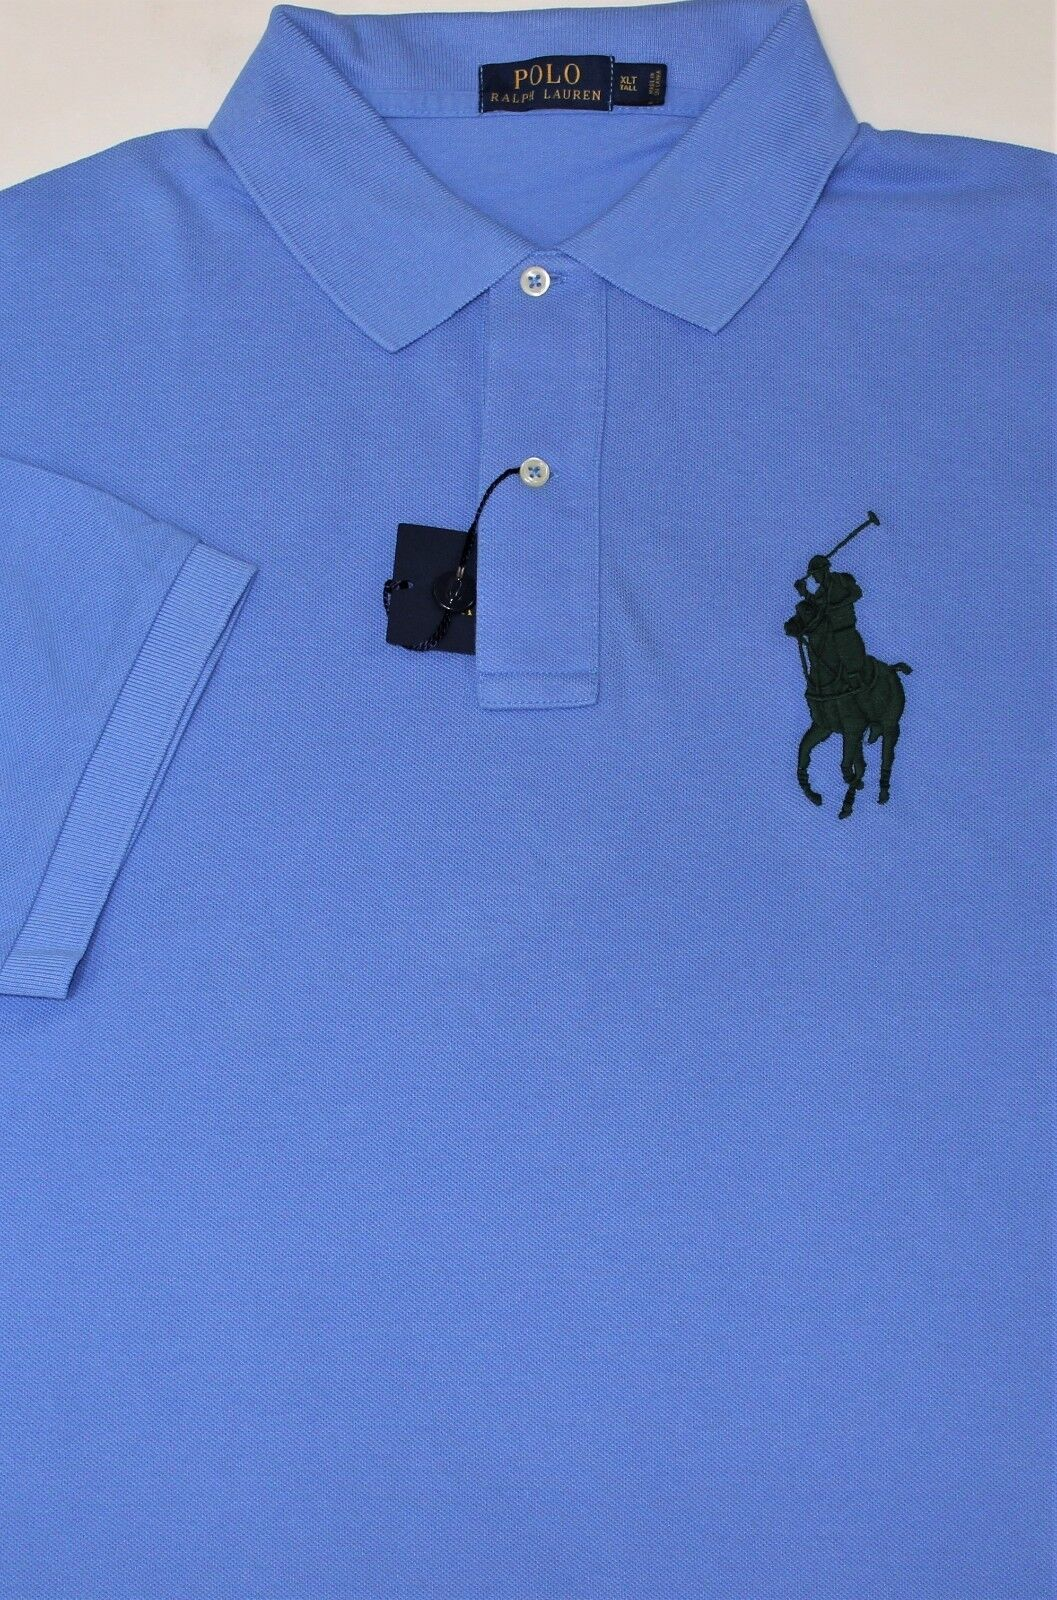 New Ralph Lauren Short Sleeve bluee Big Pony Cotton Mesh Polo   big 4X